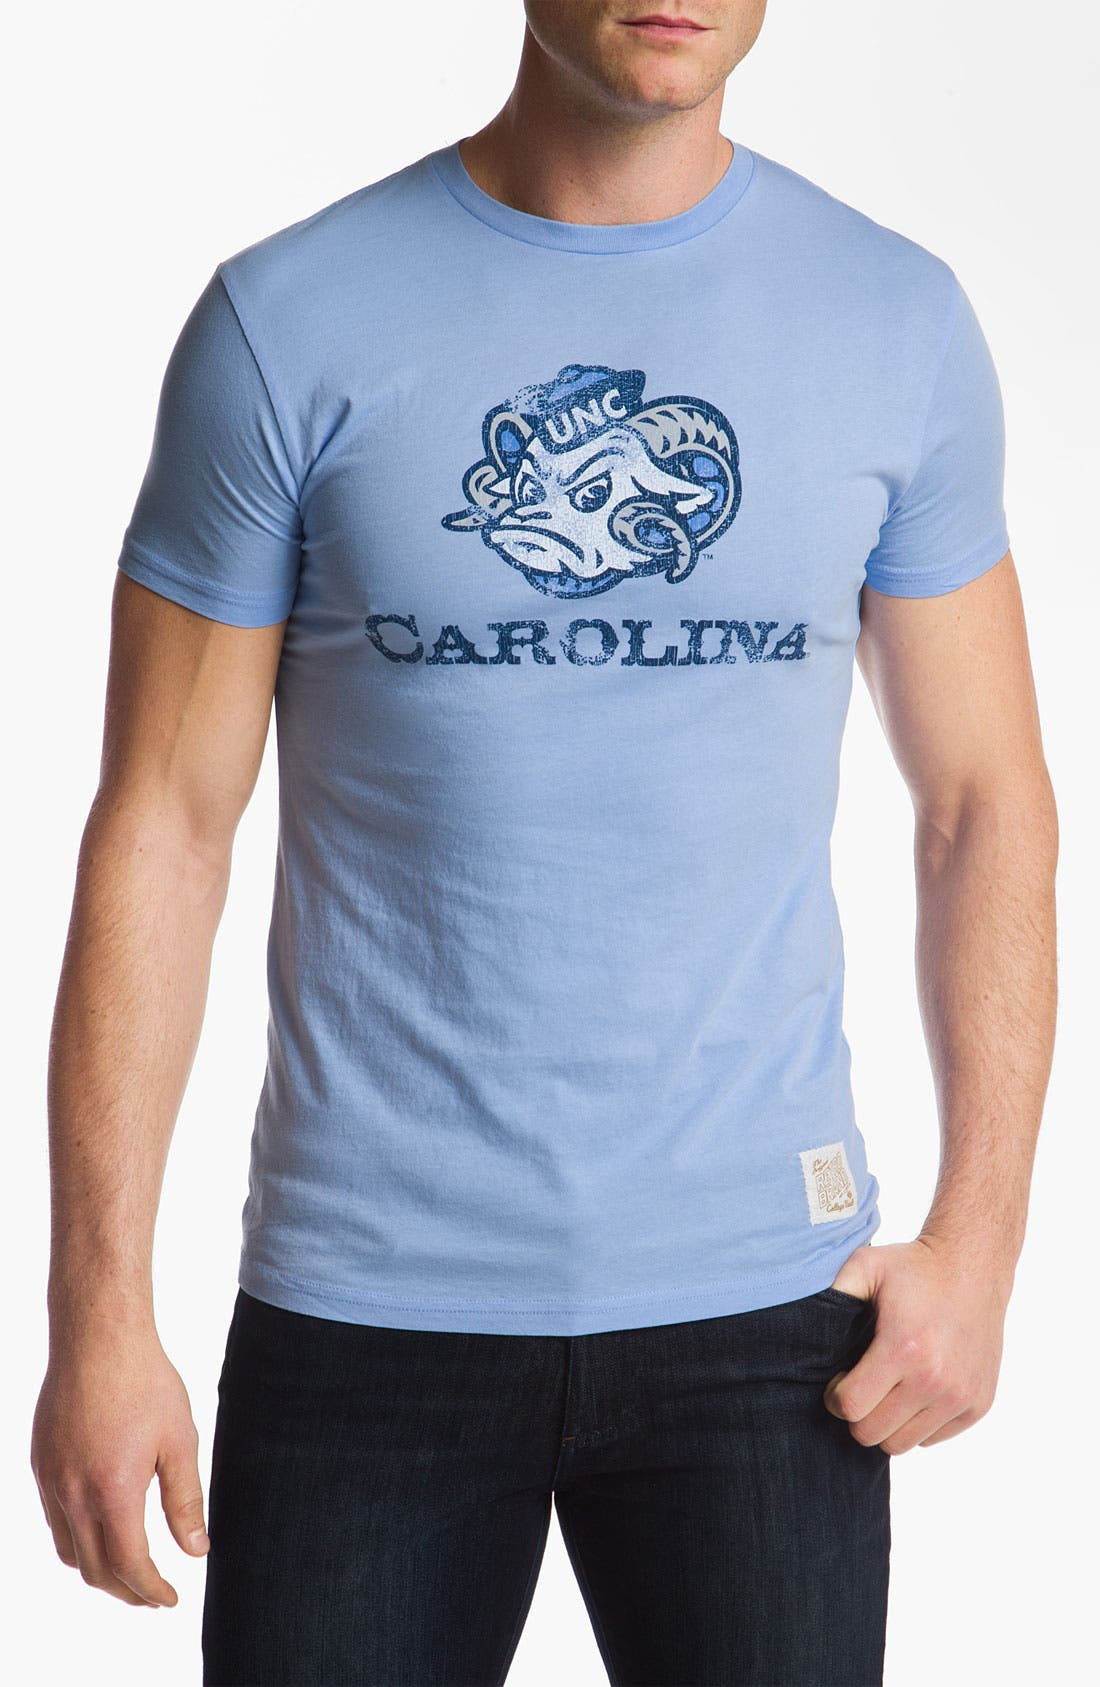 Main Image - The Original Retro Brand 'North Carolina Tar Heels' T-Shirt